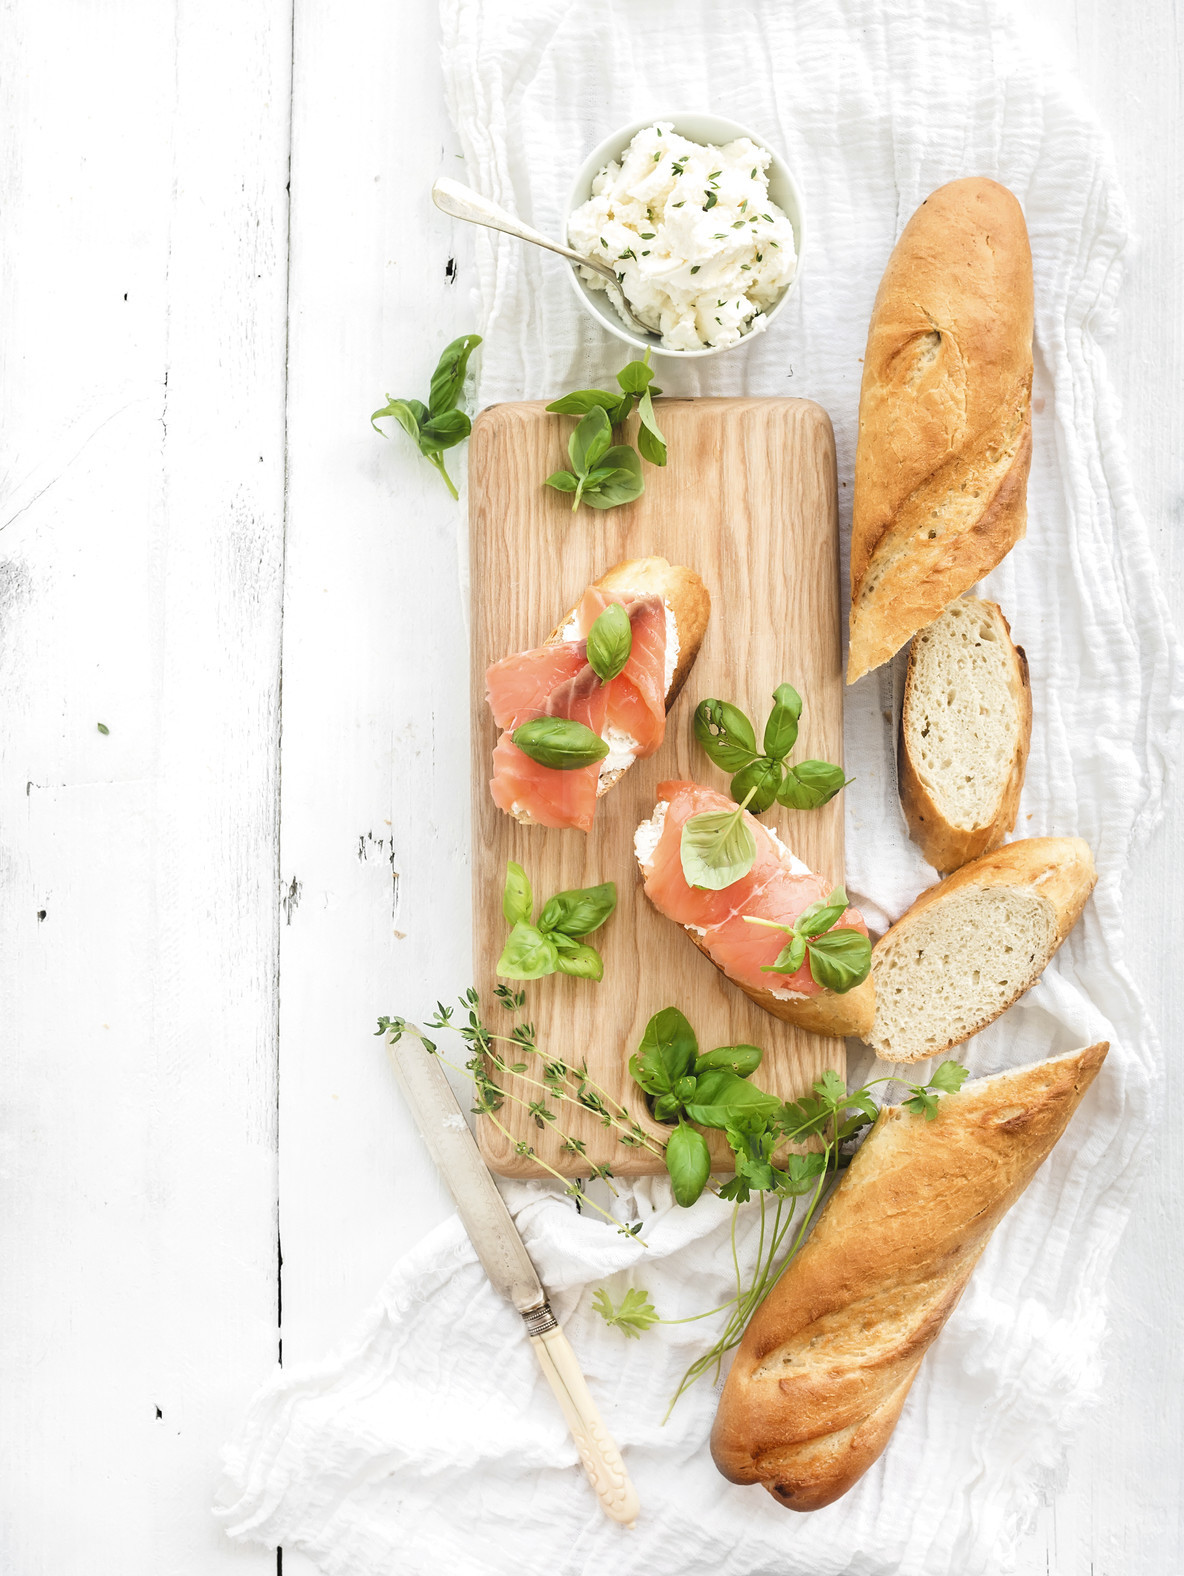 Salmon  ricotta and basil sandwiches with baguette on a rustic wooden board over white wood background  Top view